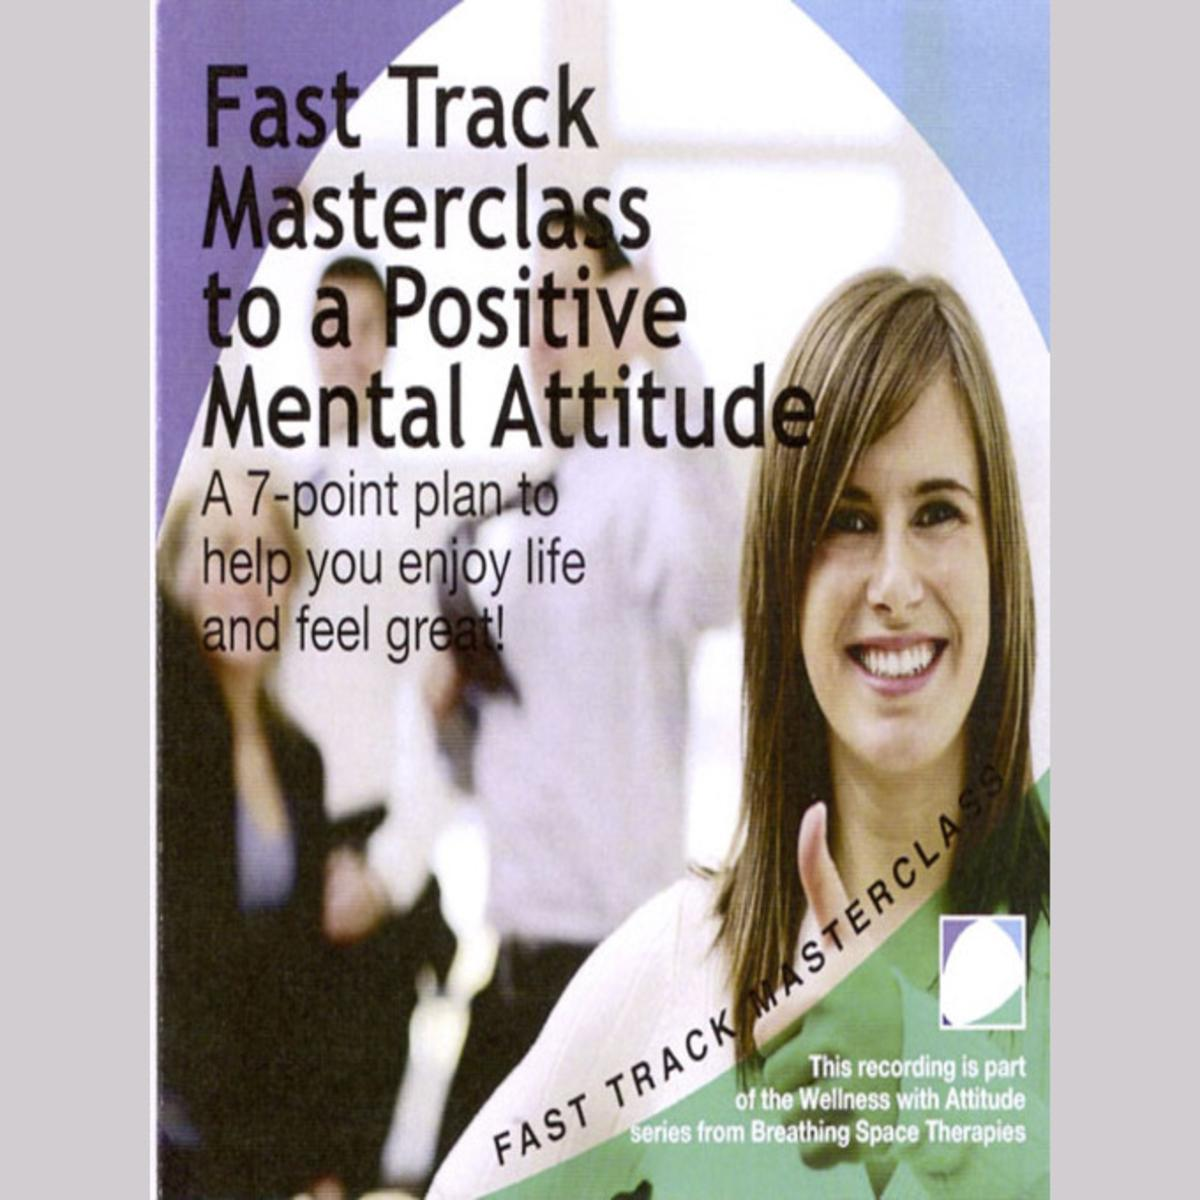 Fast track masterclass to a positive mental attitude - Audiobook